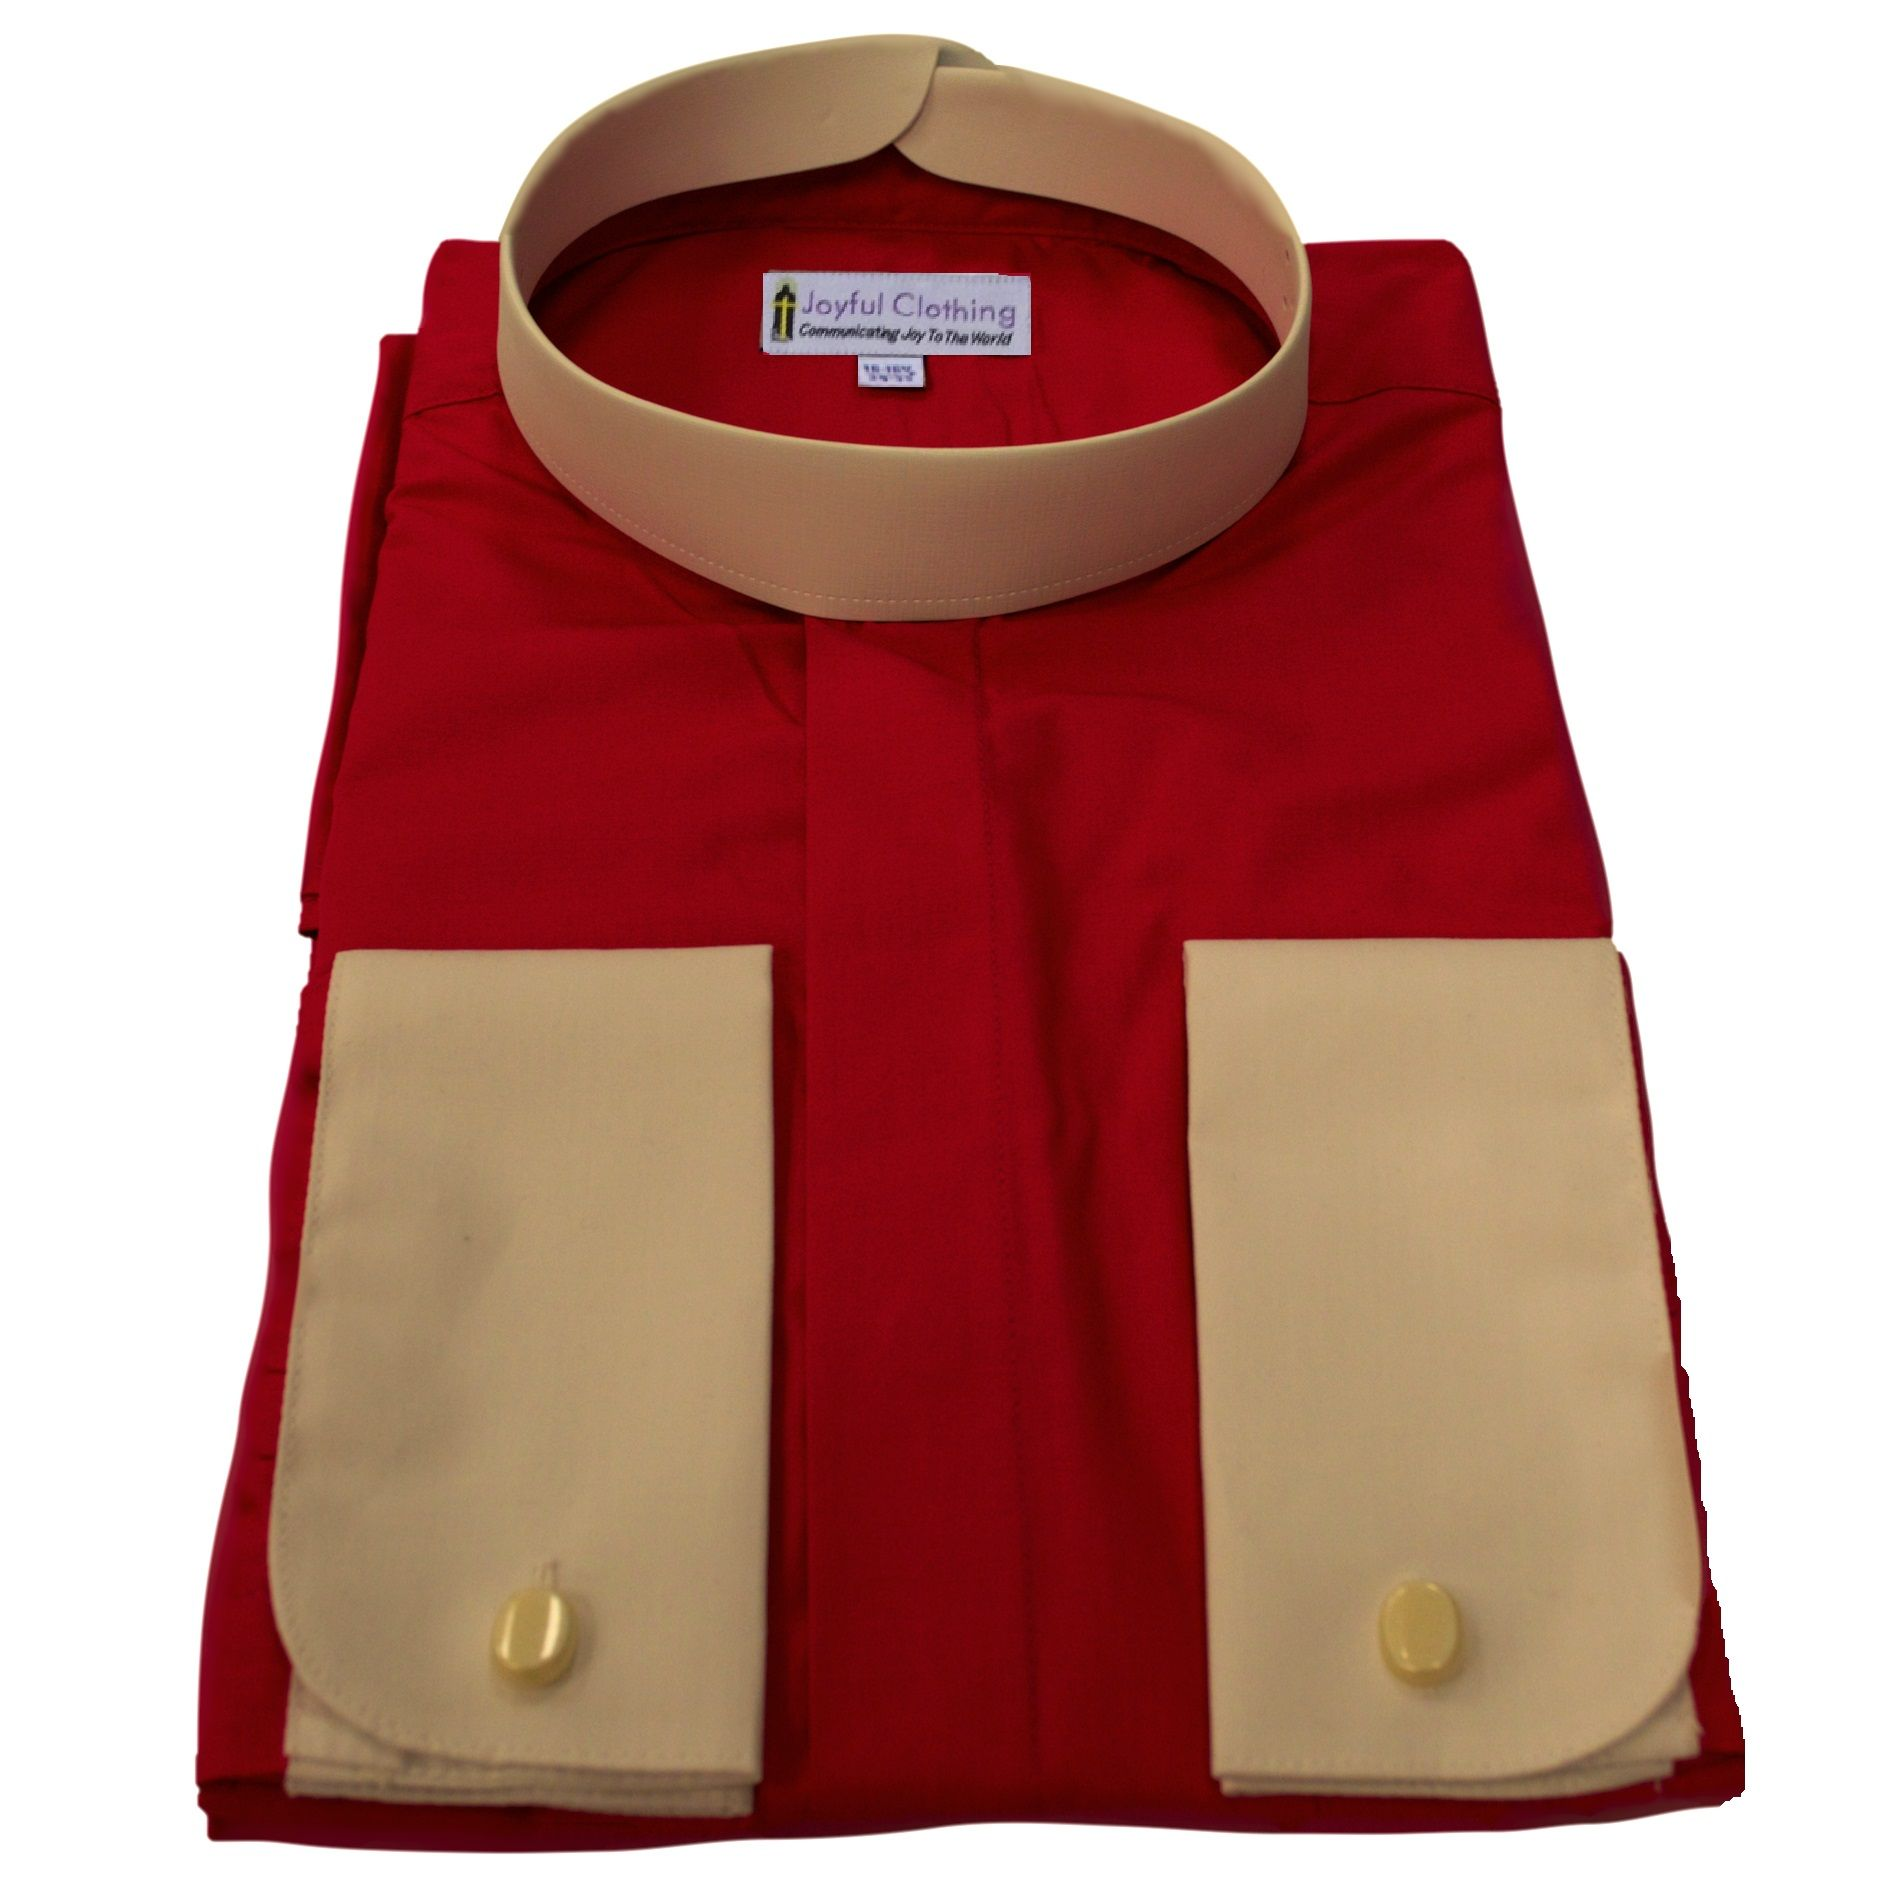 208. Men's Full-Collar Banded Clergy Shirt - Red with White Cuffs